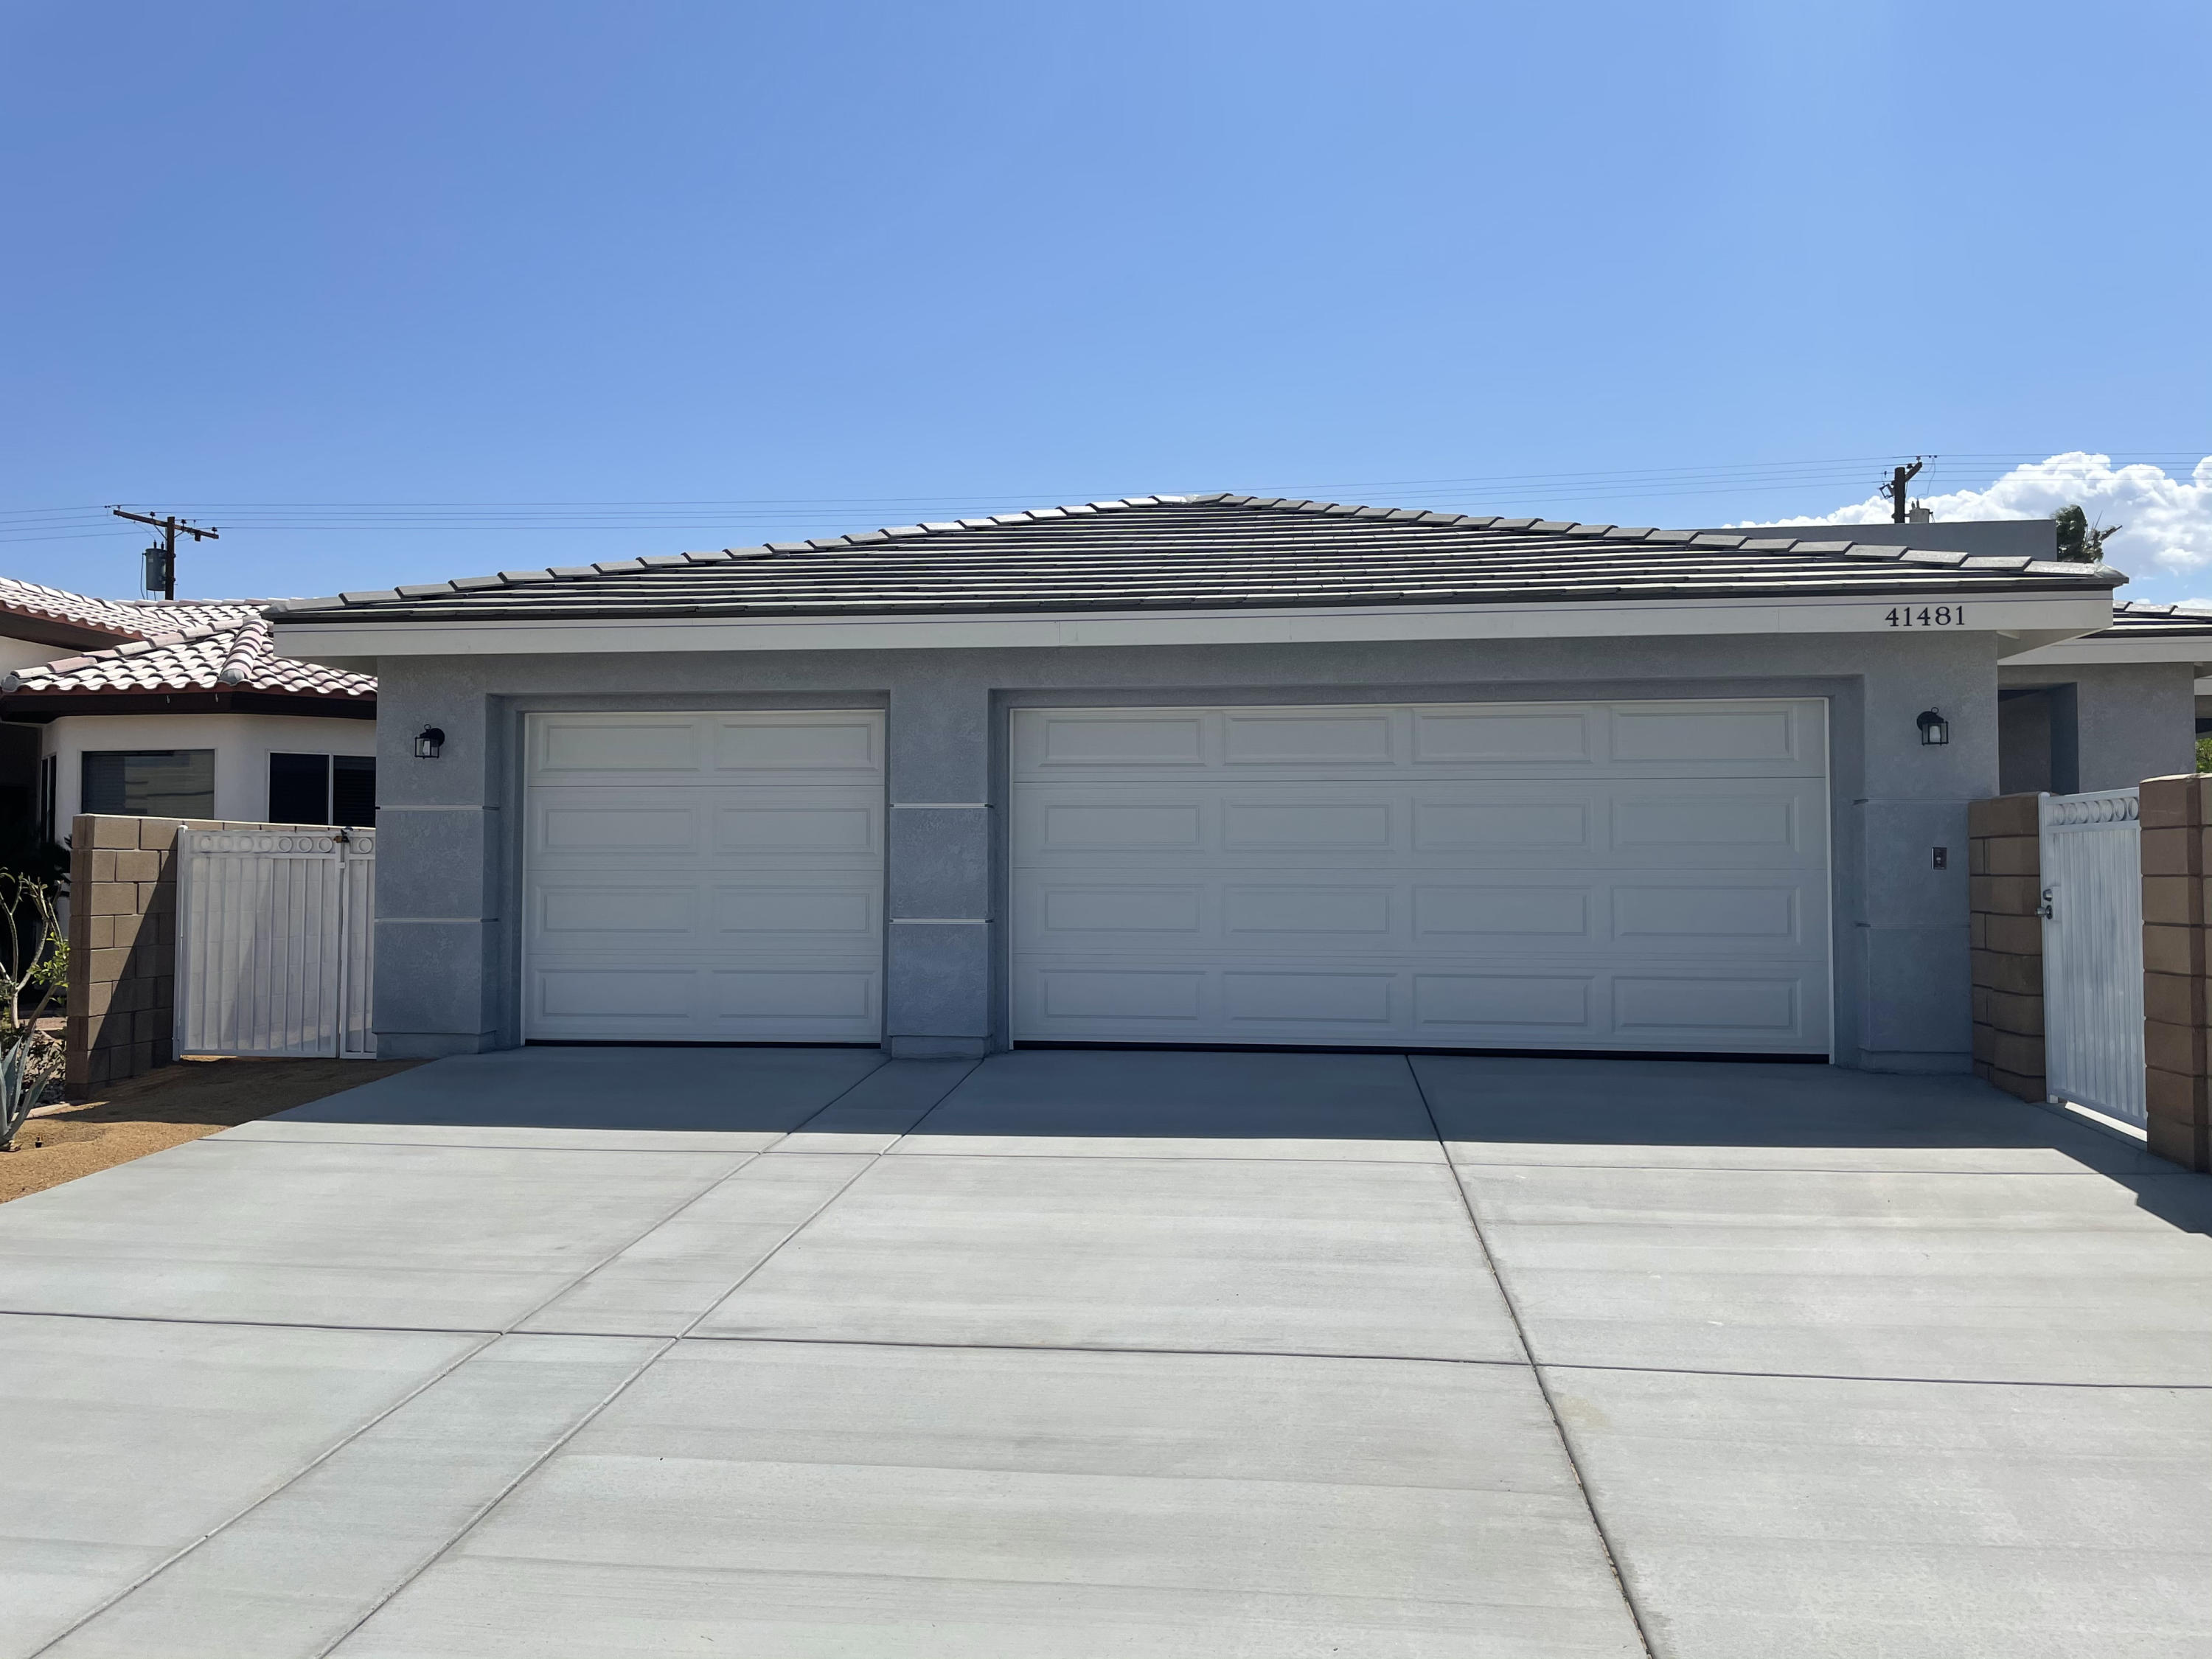 Just built brand new home. Solar panel, sound system, 3 car garage, RV parking are all there. Beautifully done with a huge kitchen island, spacious living & dining area. Step in showers are very convenient. Enough space for a pool and spa. It is not in the gated community so no HOA dues and short term rental is allowed.